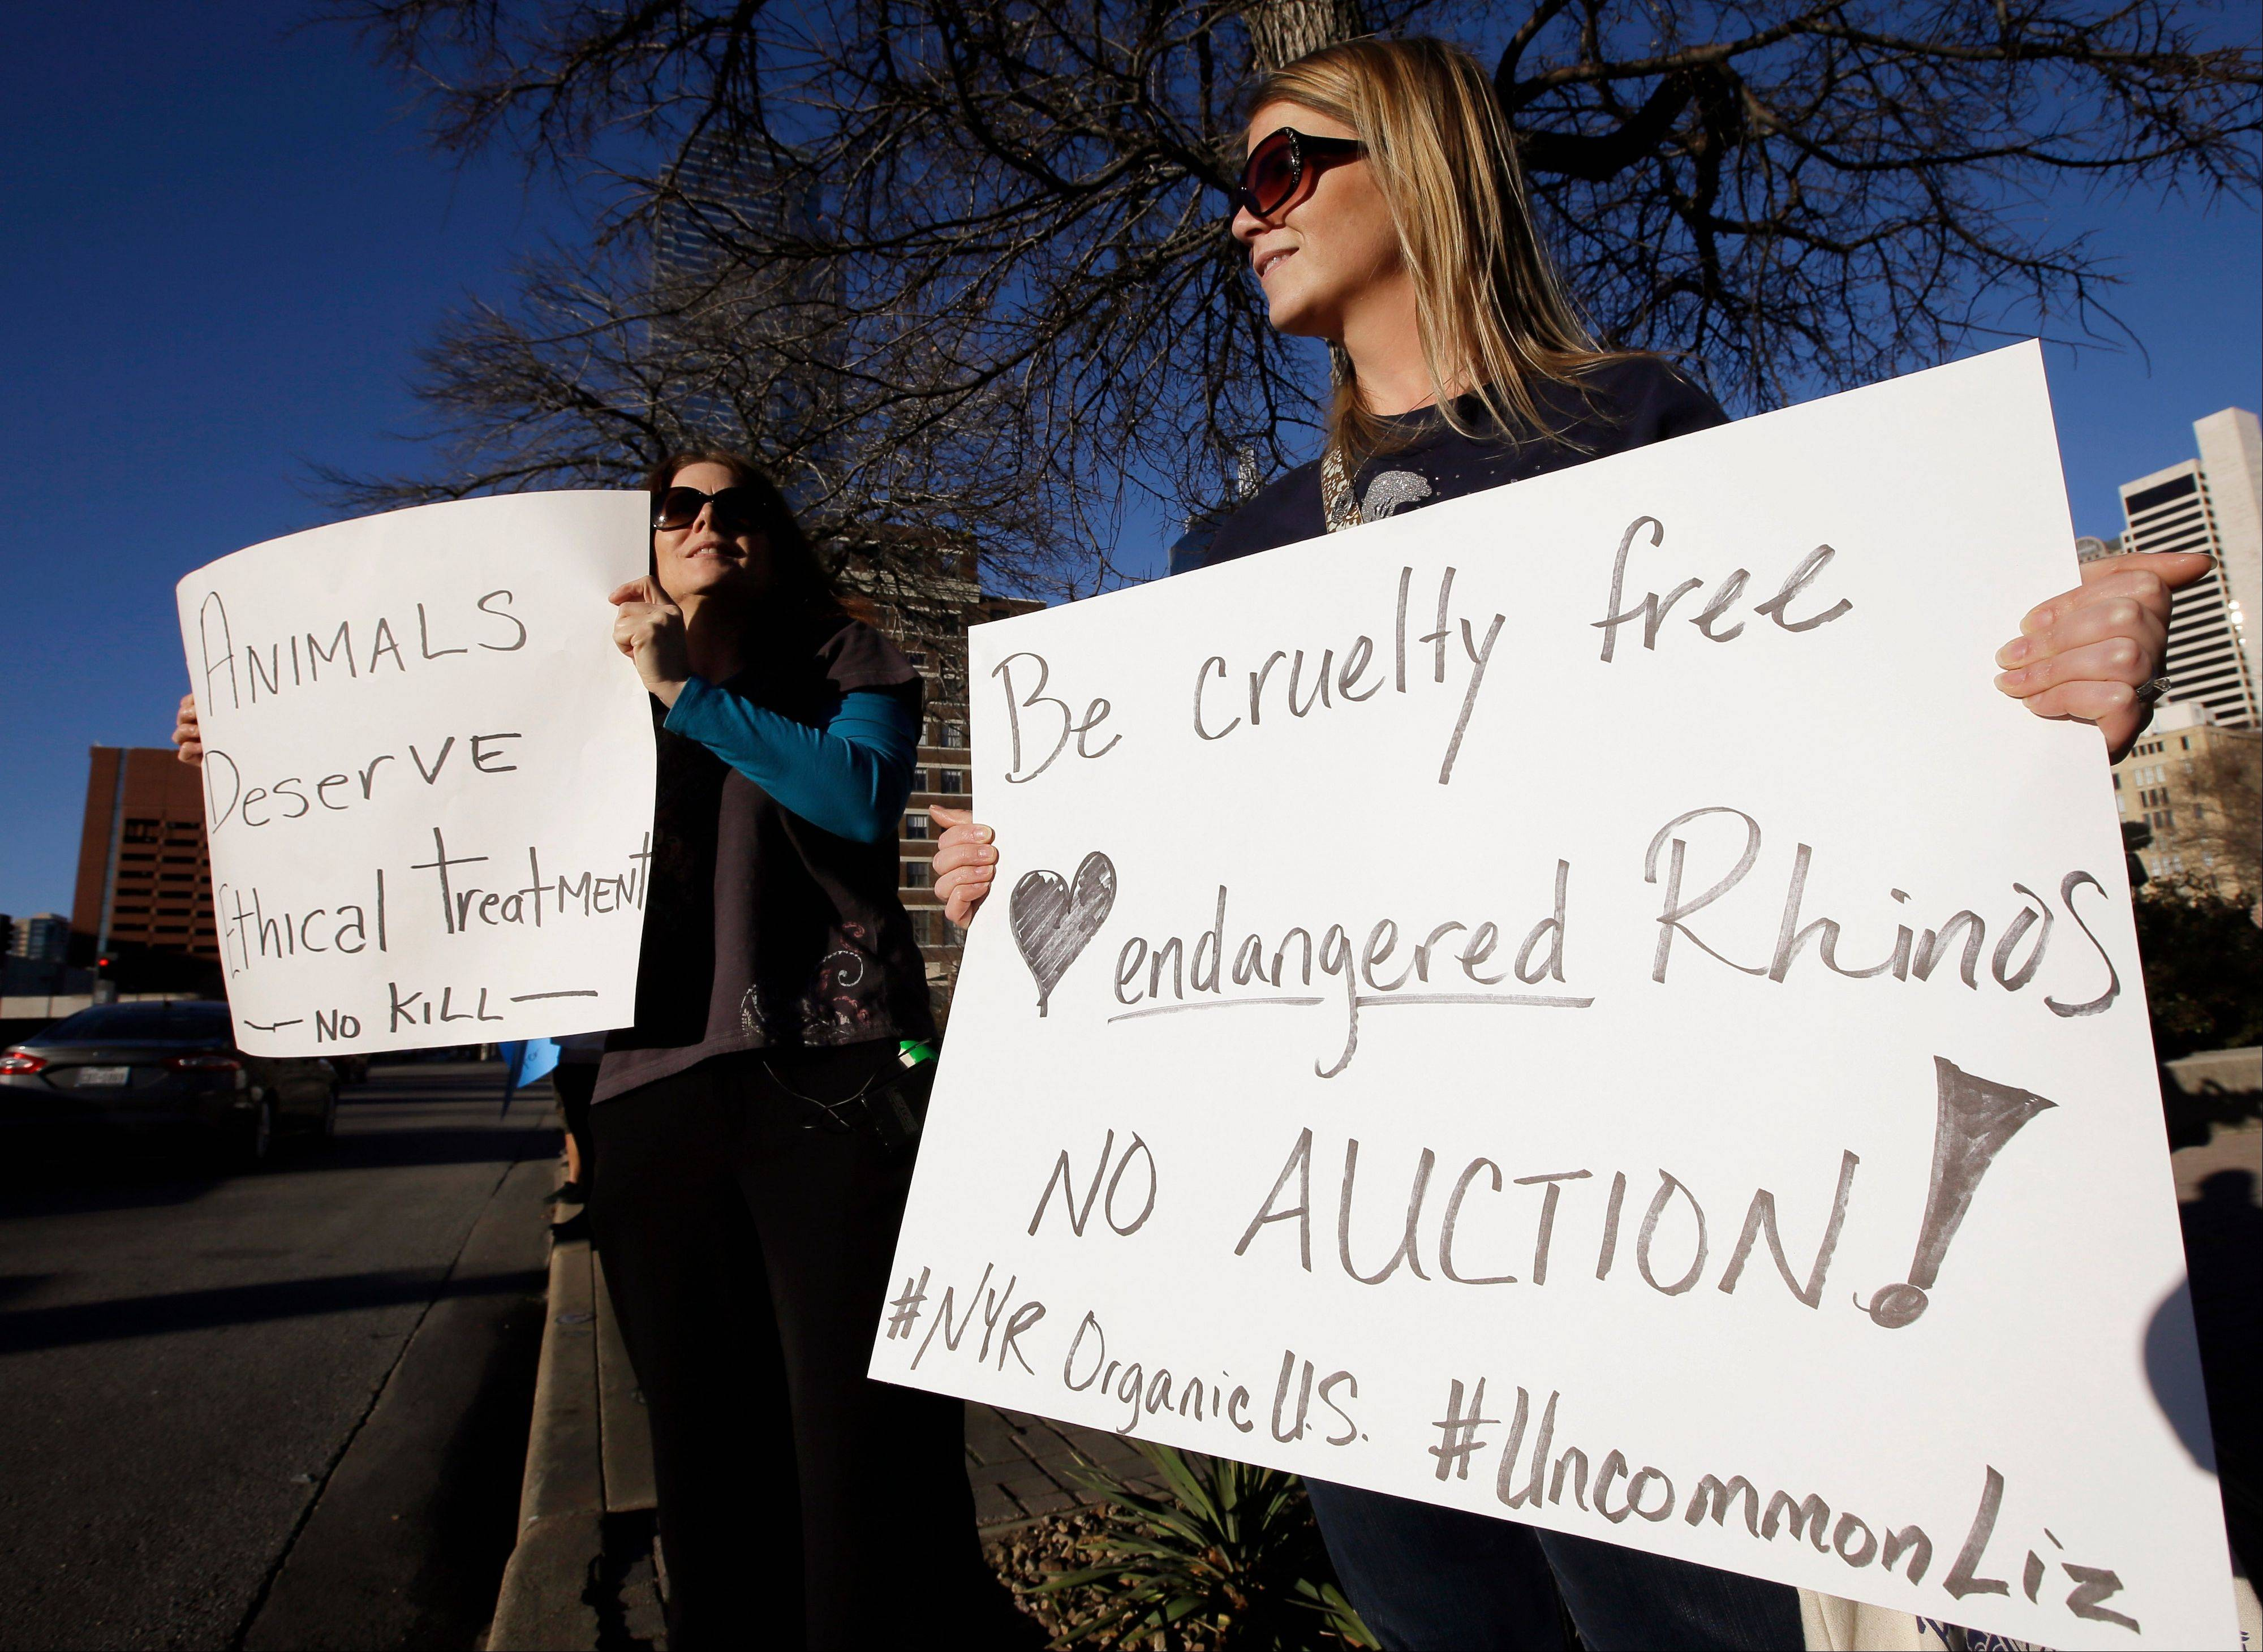 Sheila Jackson, left, and Liz Smith, both of Carrollton, Texas, hold signs Saturday as they protest outside the Dallas Convention Center where the Dallas Safari Club is holding its weekend show and auction.